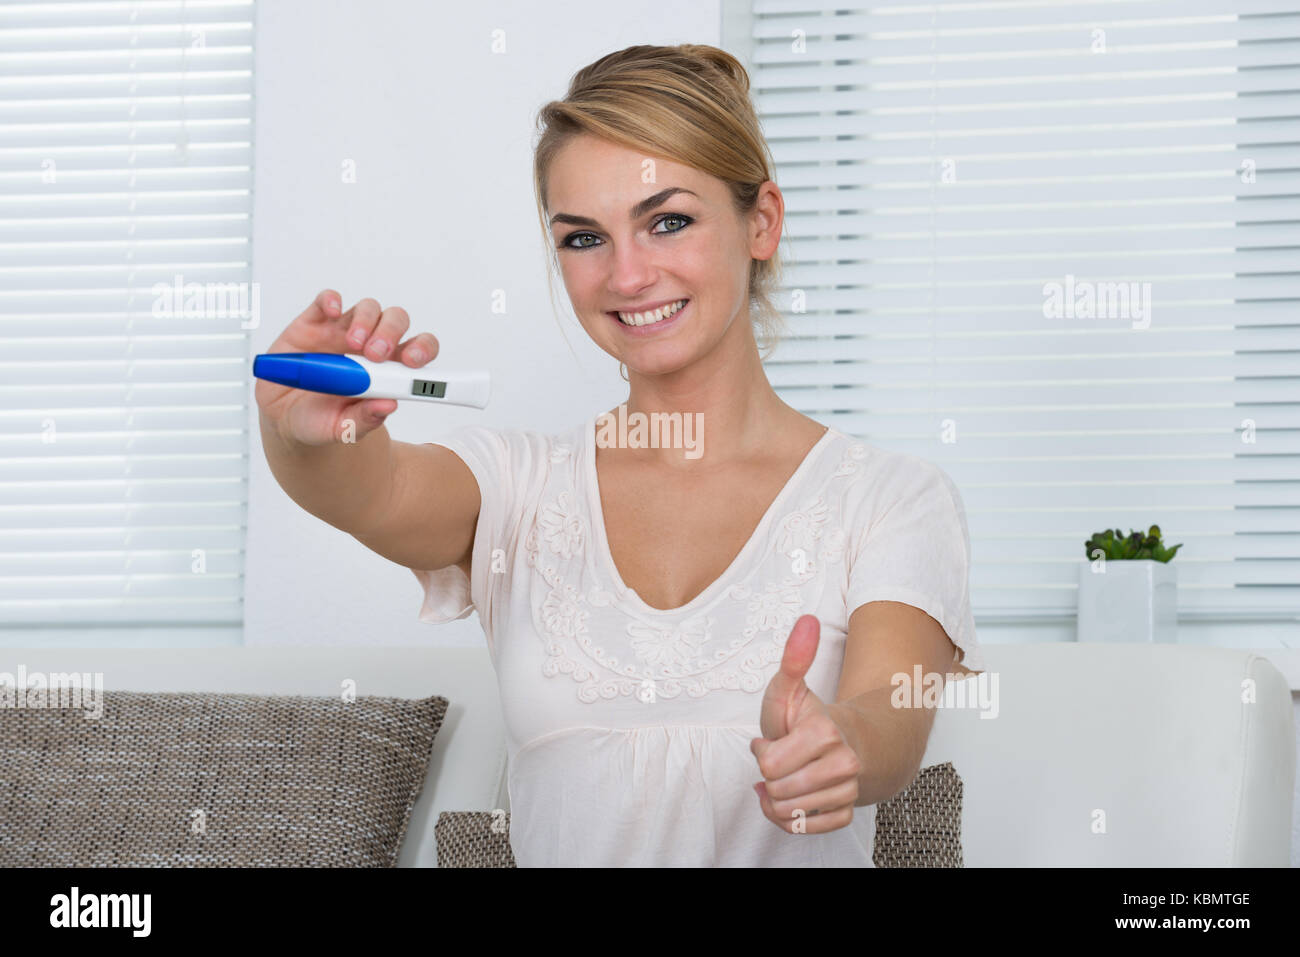 Portrait of happy young woman gesturing thumbs up while showing positive pregnancy result at home - Stock Image